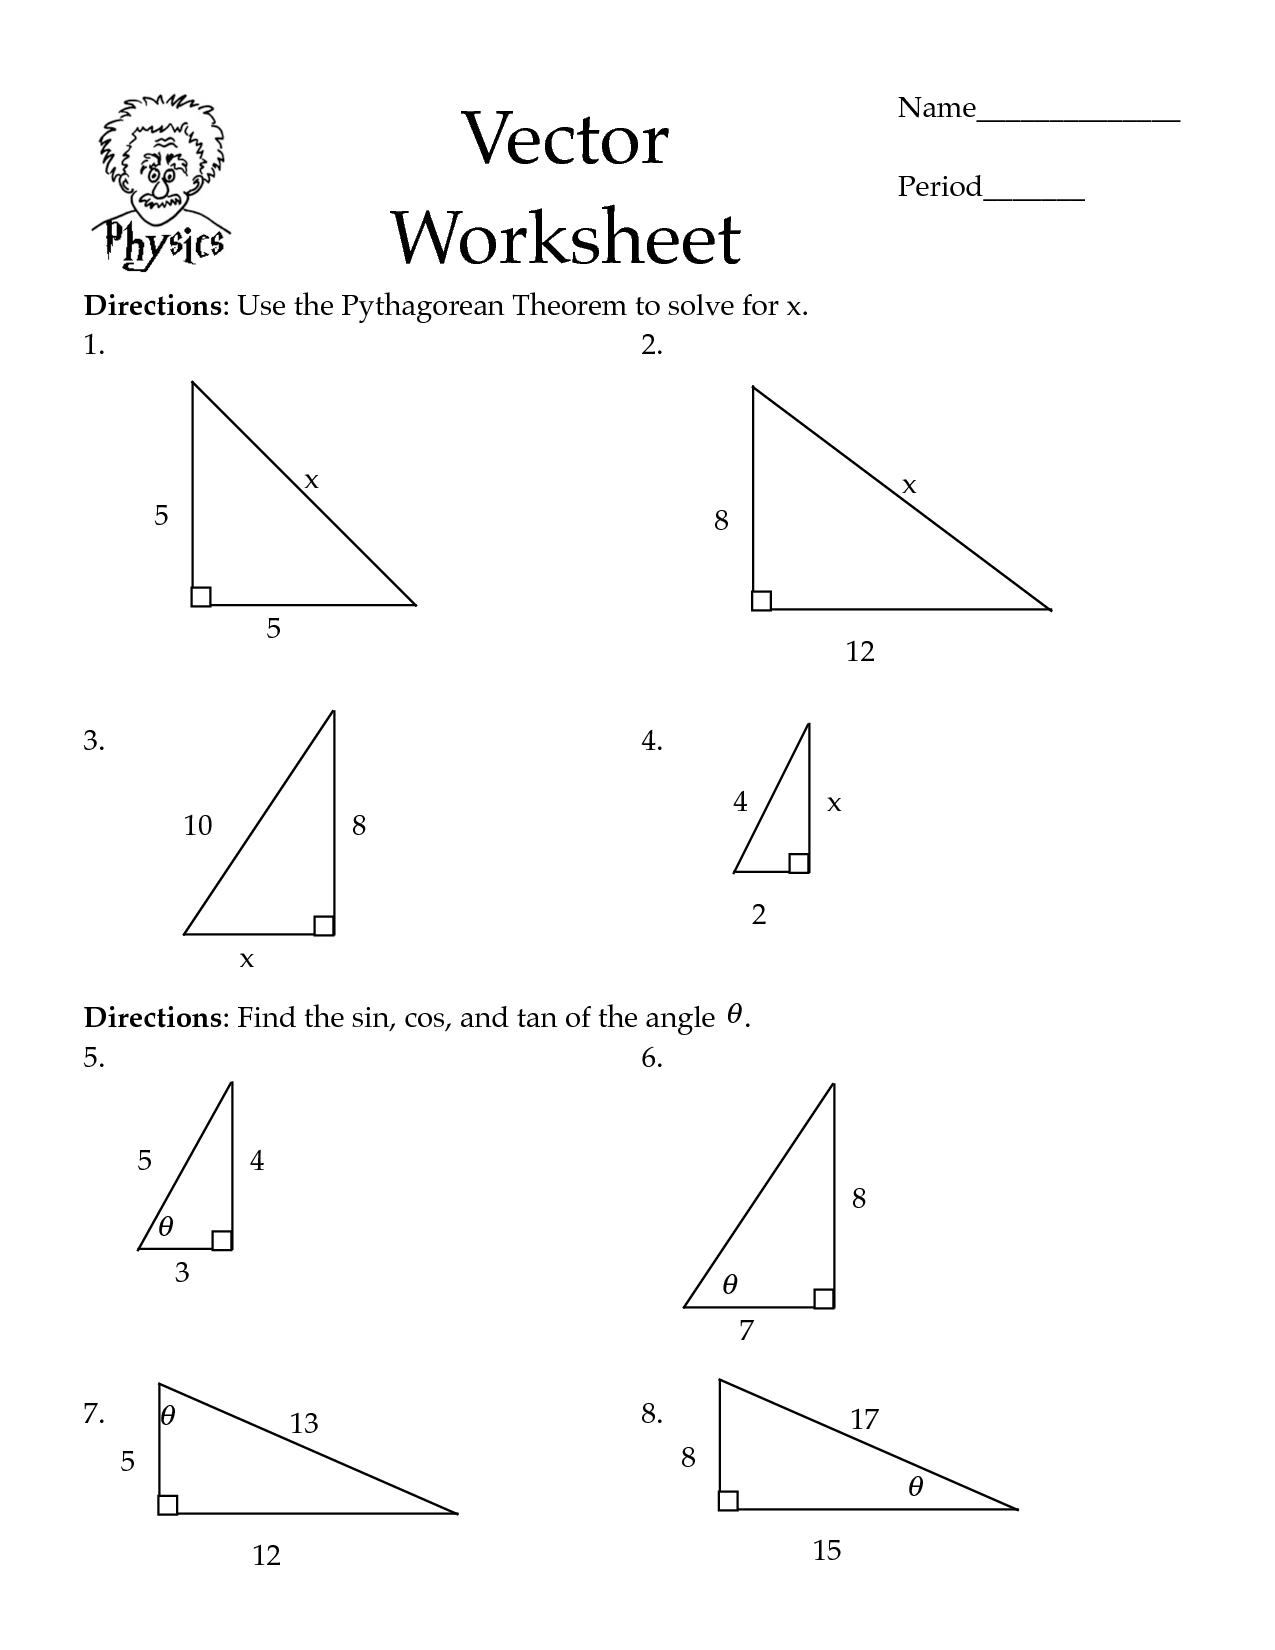 pythagorean theorem worksheets Cos Law Worksheet PDF – Pythagorean Theorem Word Problems Worksheets